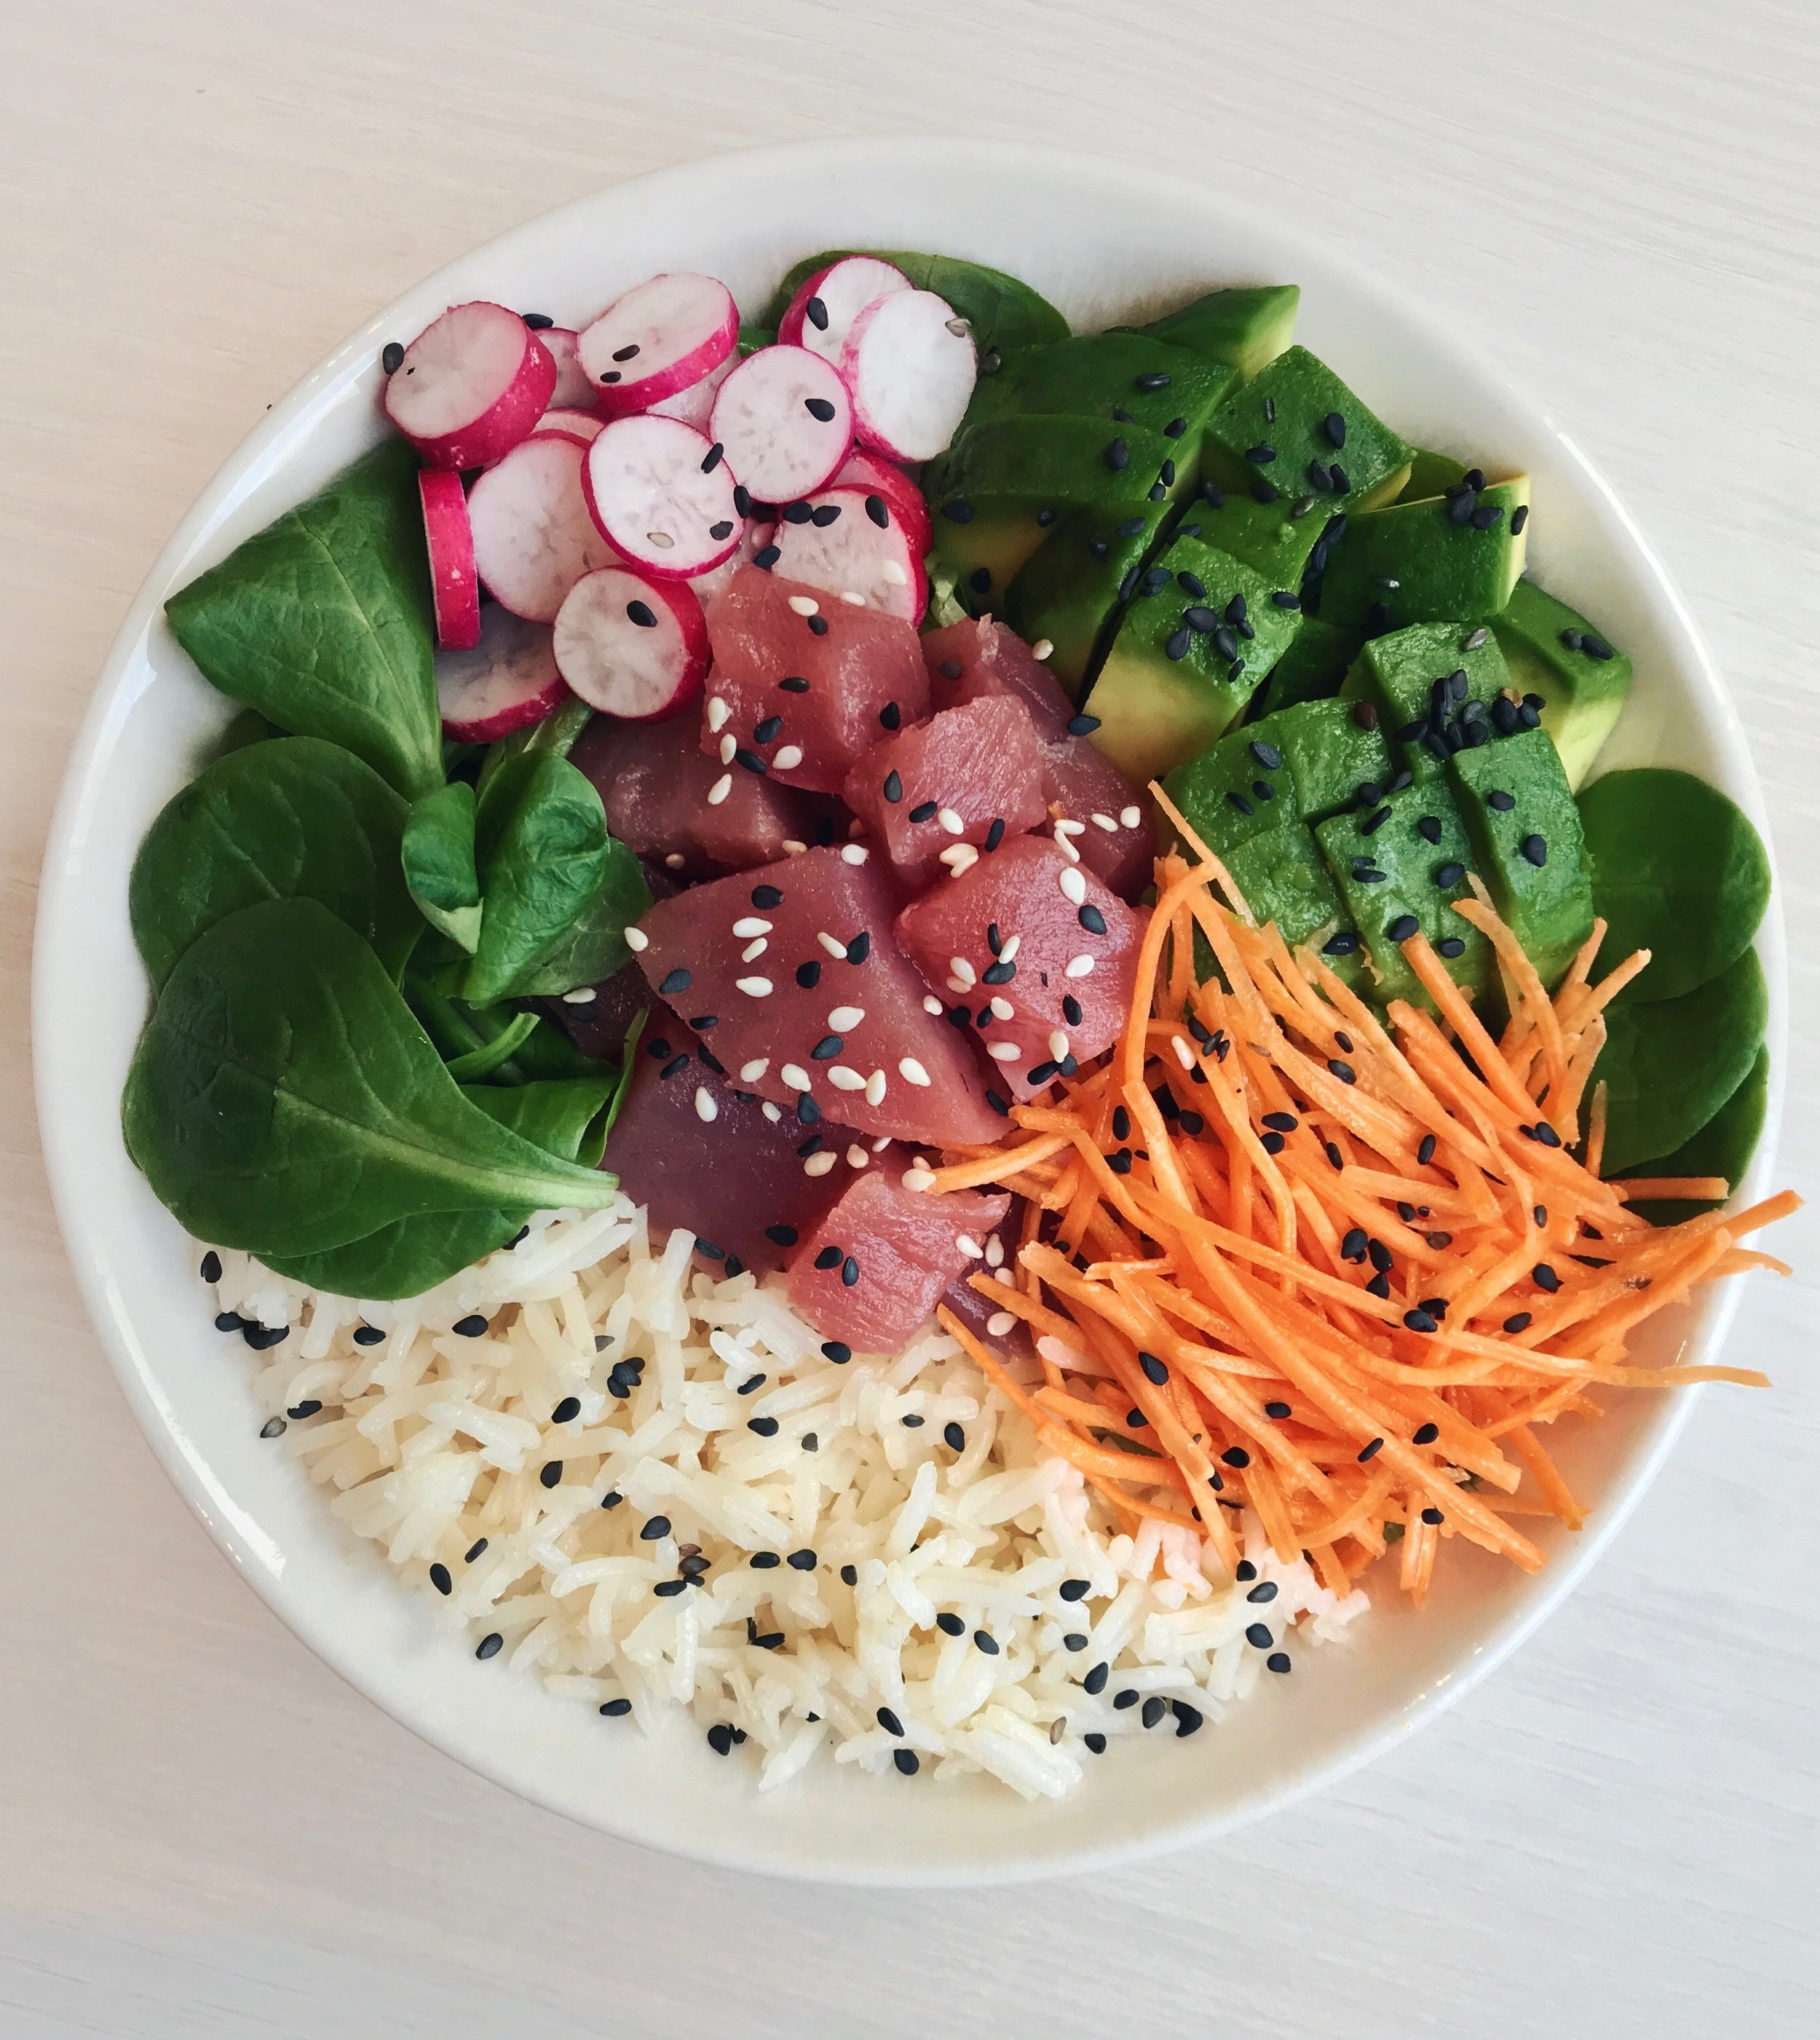 Colorful Fresh Tuna Poke Bowl - What you need:- Basmati rice (boiled for about 20mn)- Fresh tuna (diced)- Avocado (cut into squares)- Pink radish- Carrots (washed and shredded)- Fresh salad leaves- Teriyaki + Soy SauceOnce the rice is cooked, mix it with a soy sauce + teriyaki sauce as well as some sesame seeds. Layer inside your bowl. Dispose all the other ingredients on top, and you're set to eat!